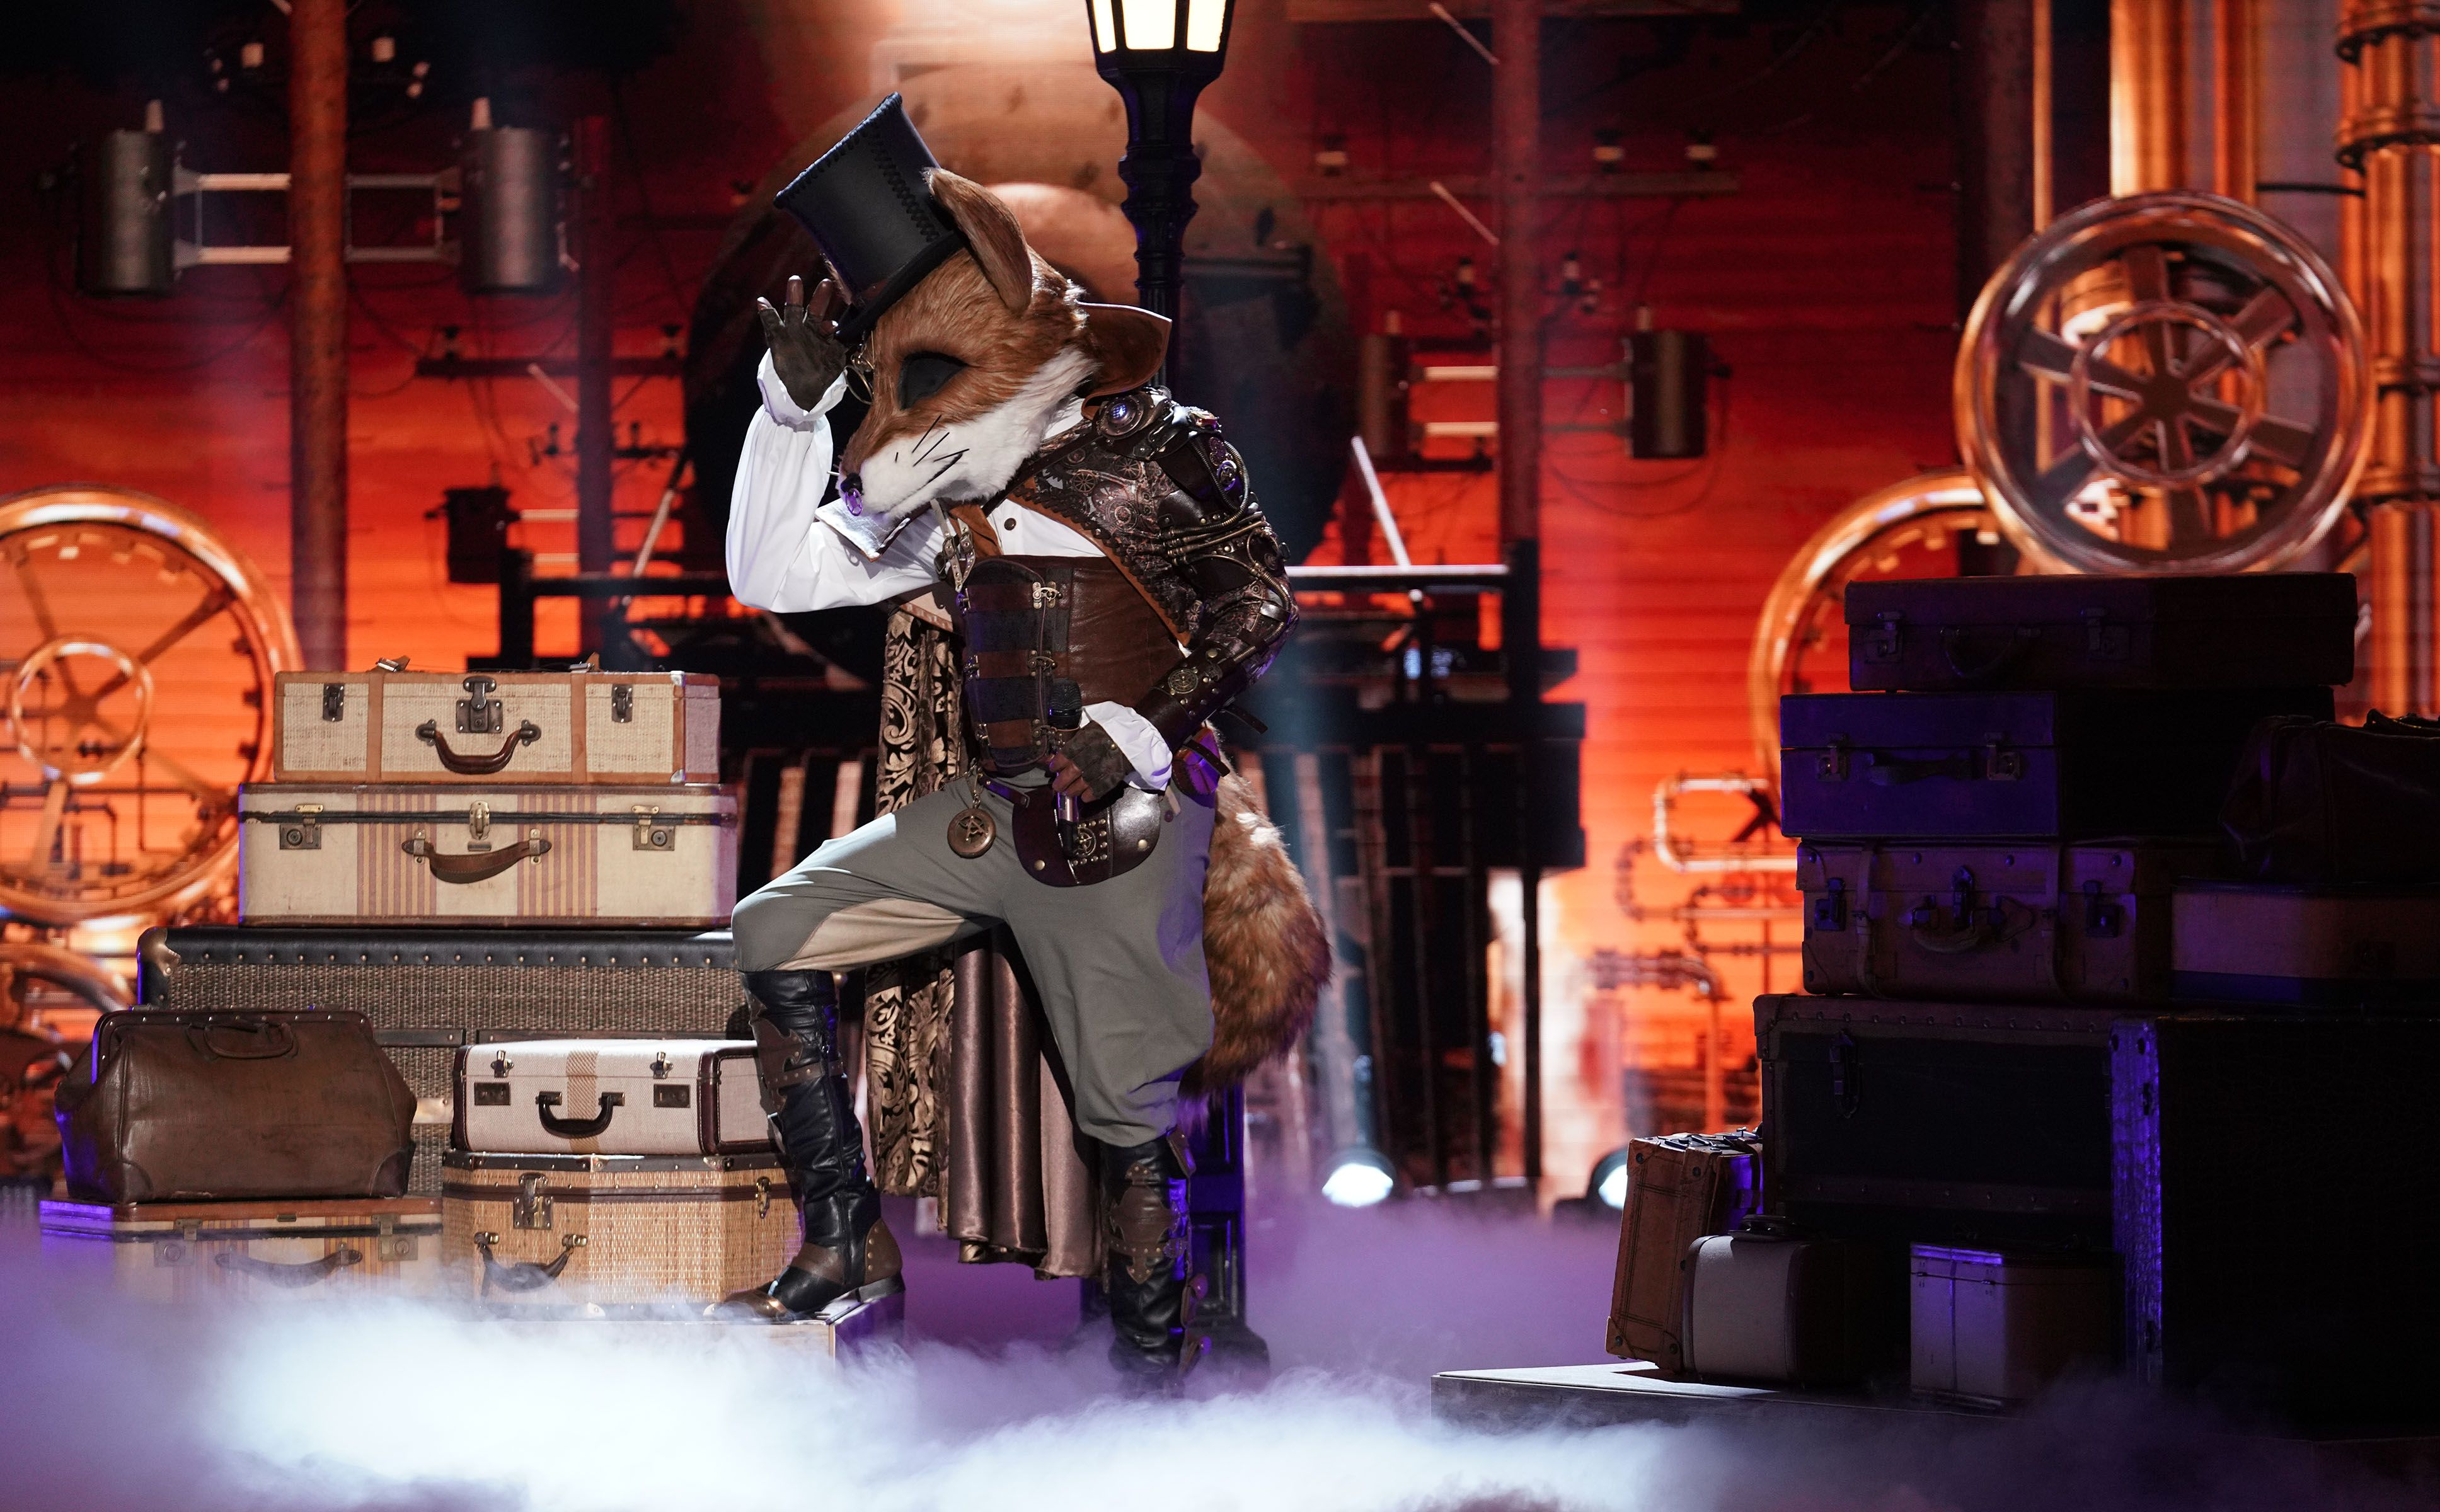 Who Is The Fox On The Masked Singer? There Are Several Different Theories